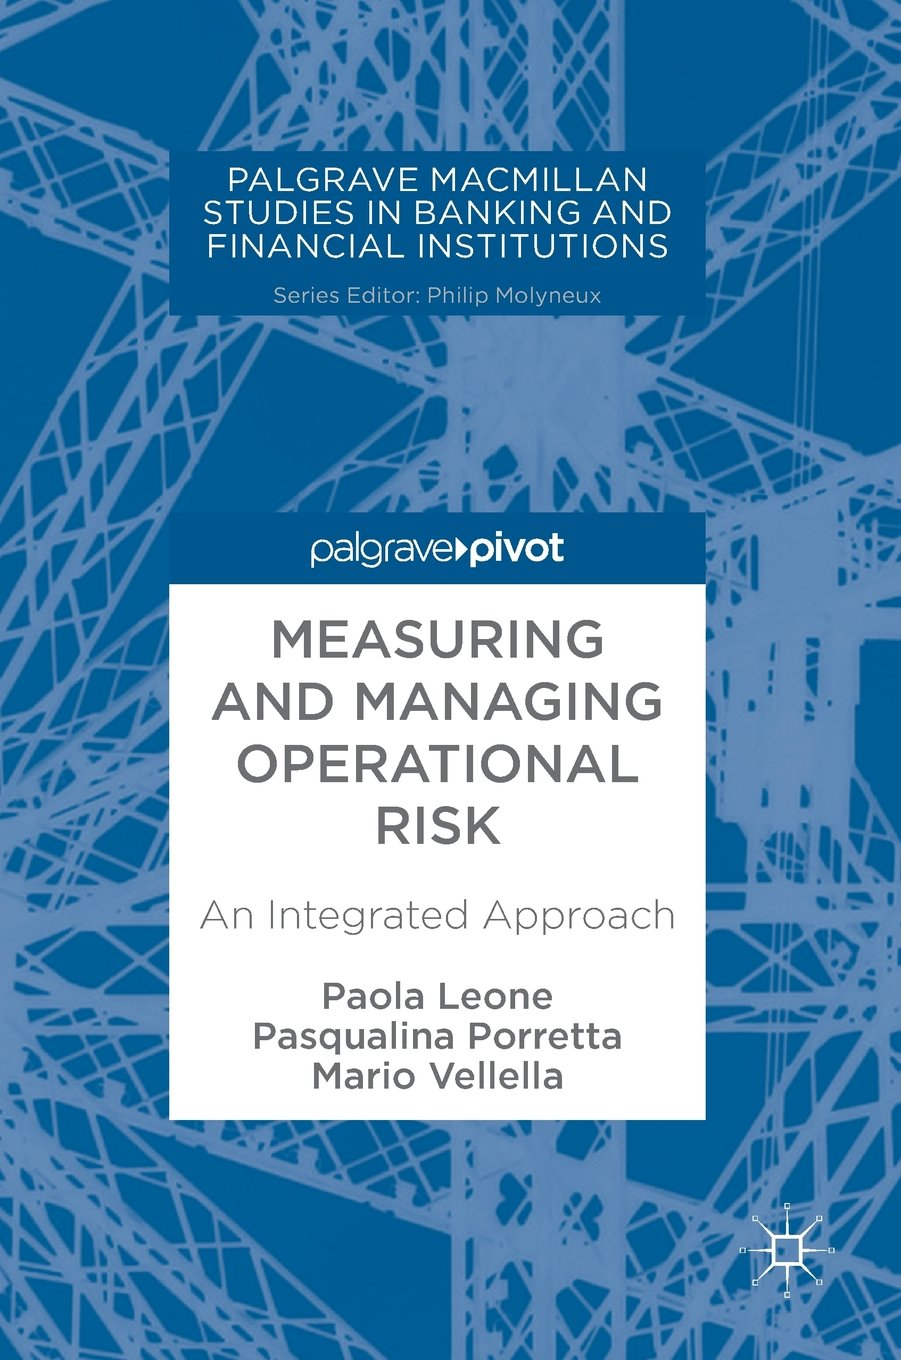 Measuring and Managing Operational Risk: An Integrated Approach (Palgrave Macmillan Studies in Banking and Financial Institutions)